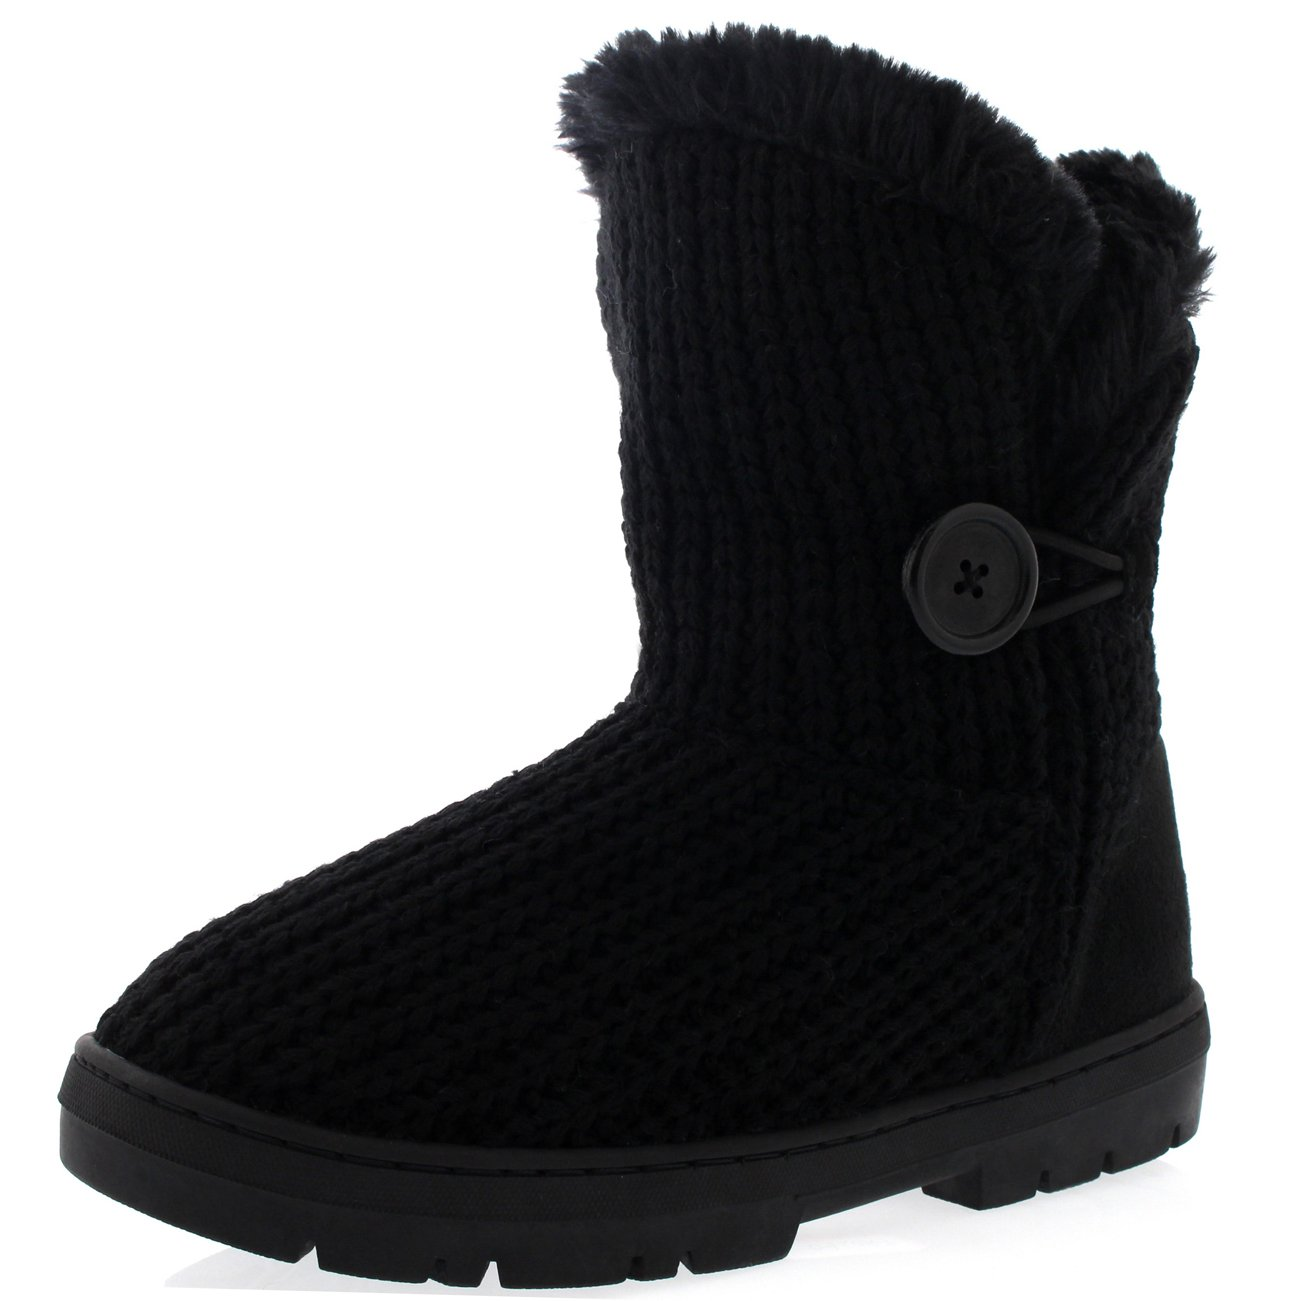 Womens Single Button Fully Fur Lined Waterproof Winter Snow Boots B00YUUEHLO 7 B(M) US|Black Knitted